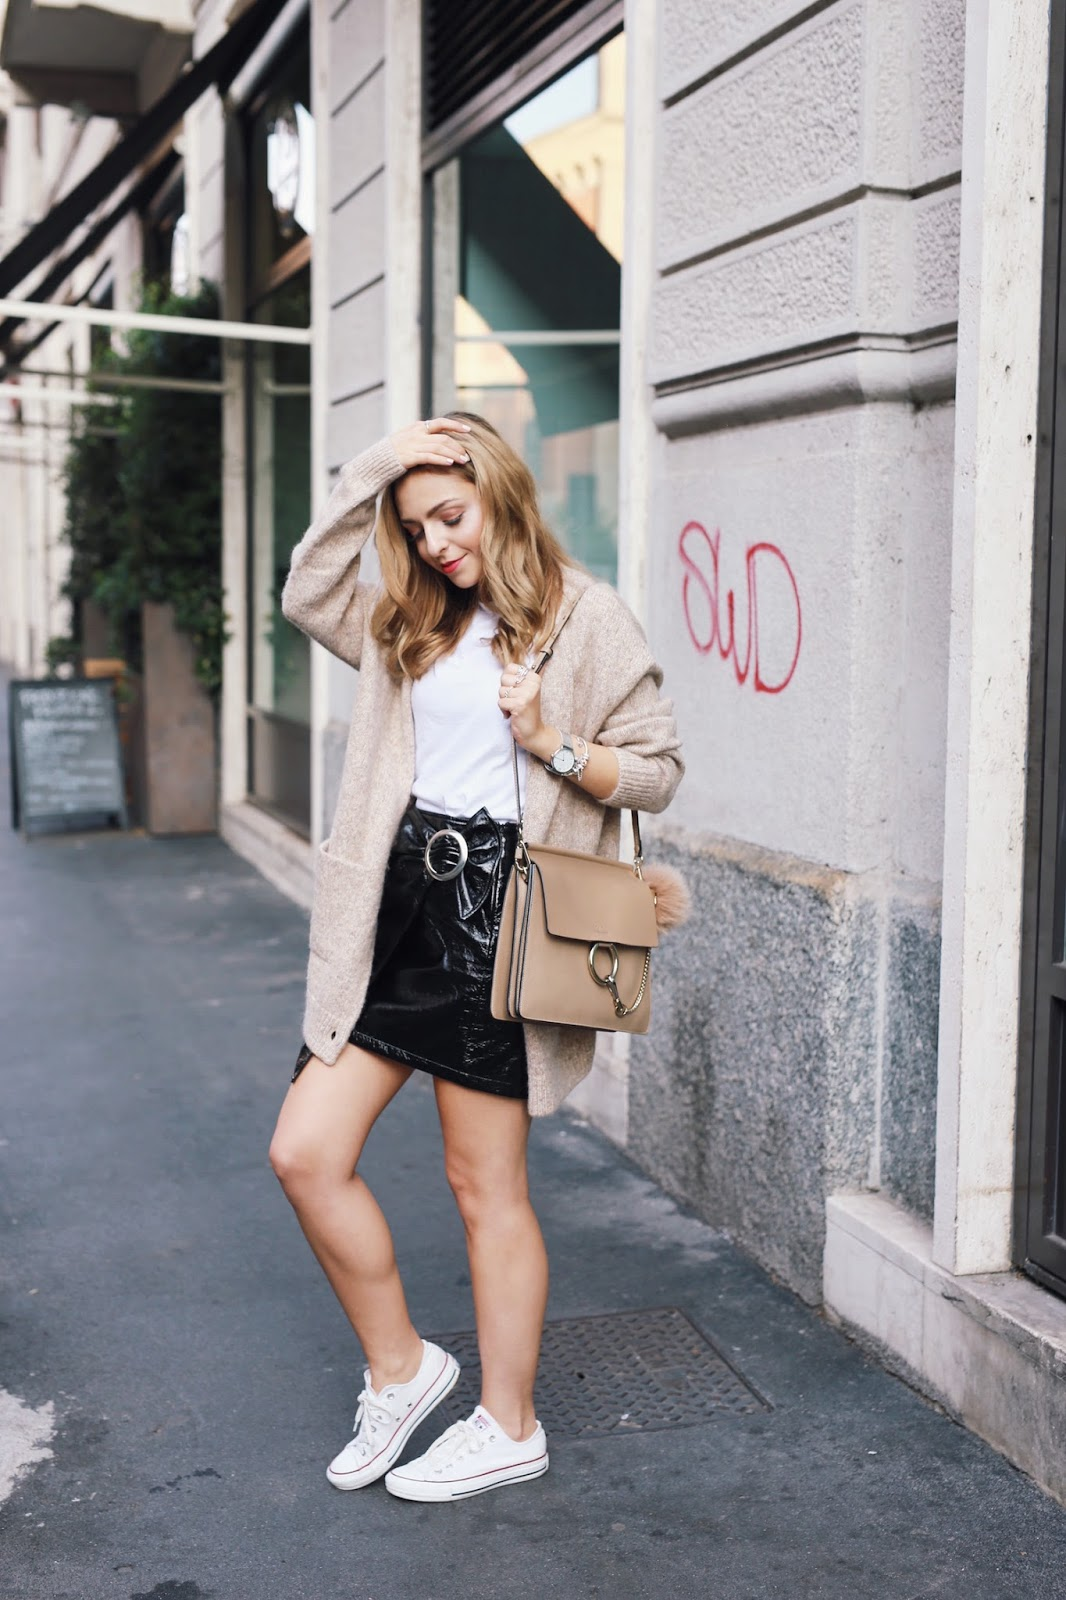 Milan Street Style Vinyl Skirt Outfit